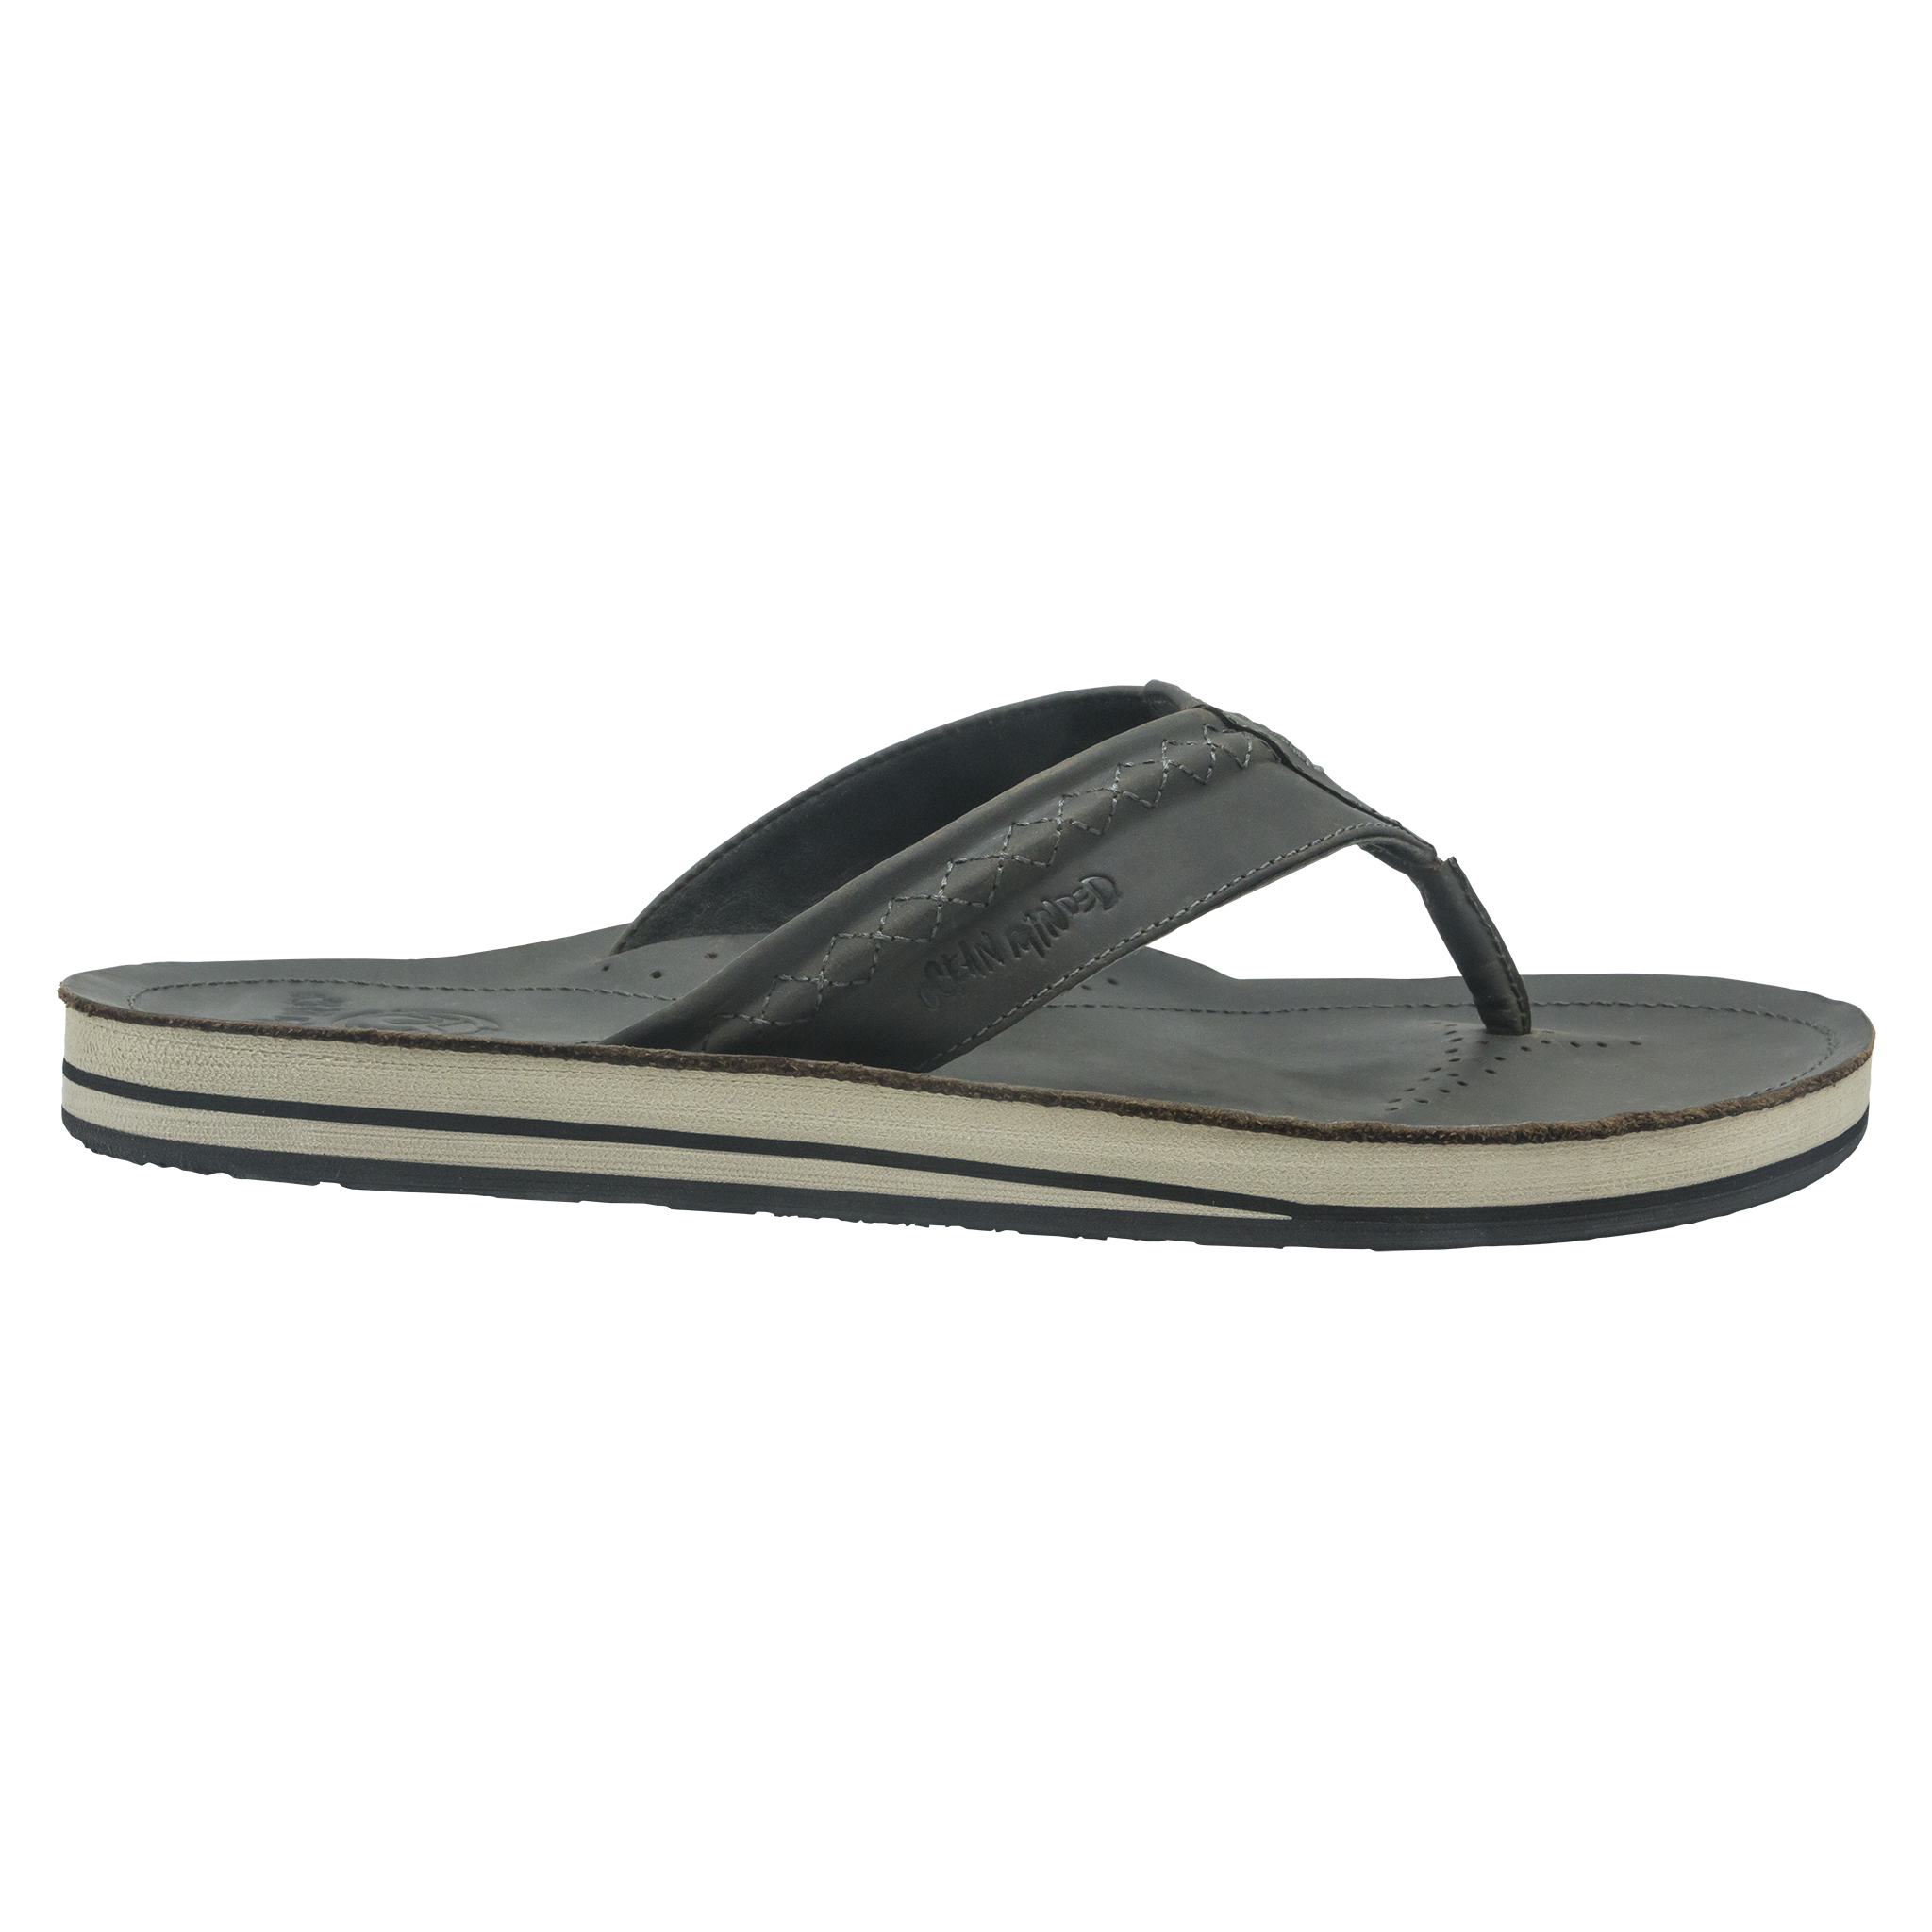 The Hanalei - Men's Sandal